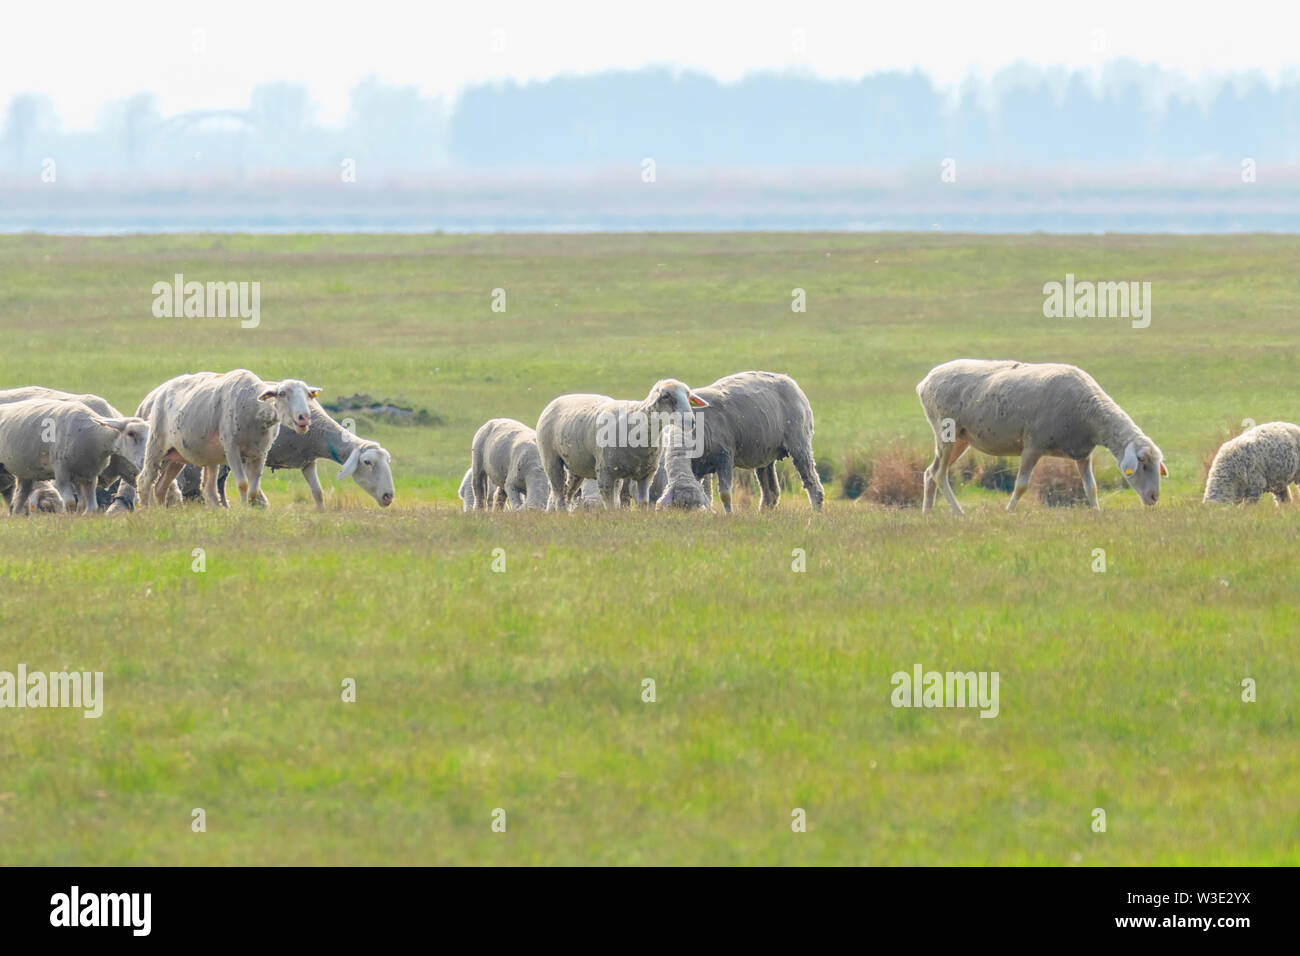 Flock of sheep, sheep on field - Stock Image